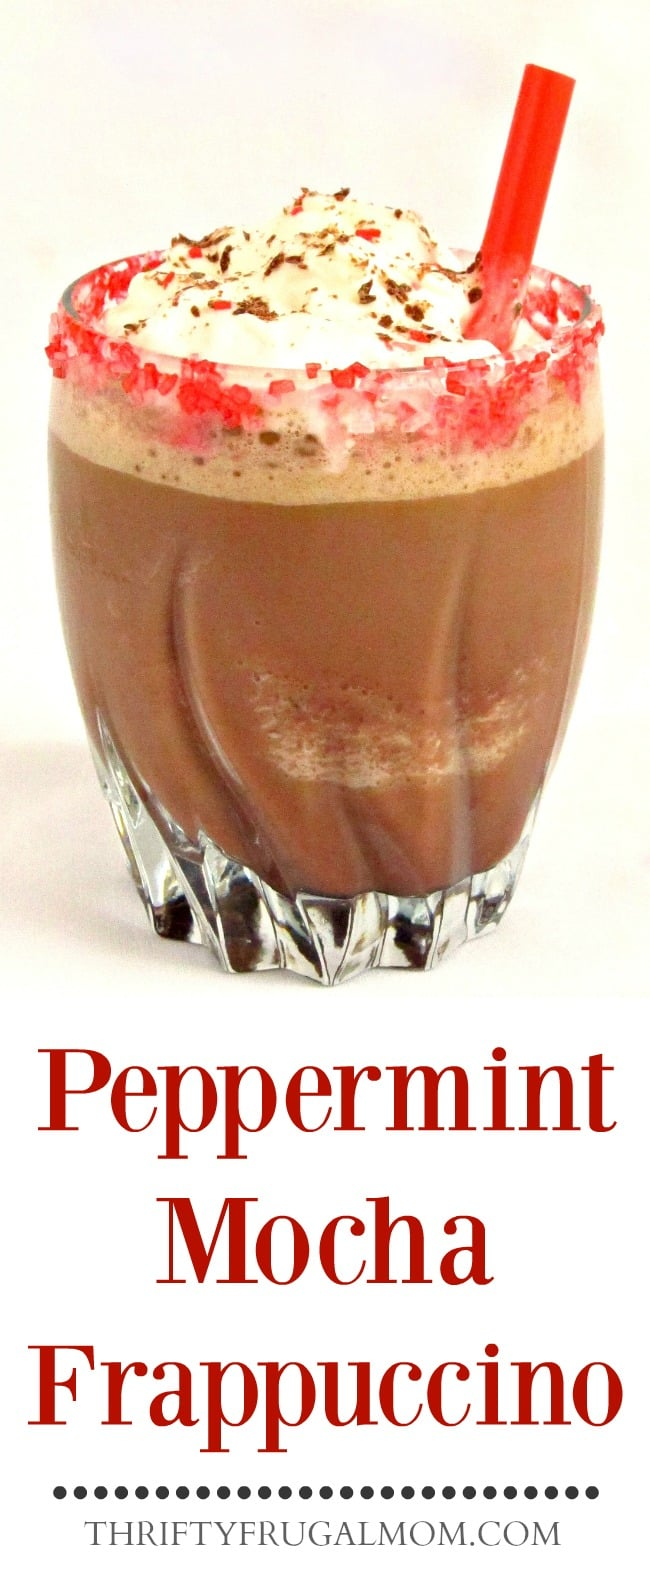 Peppermint Mocha Frappe Recipe